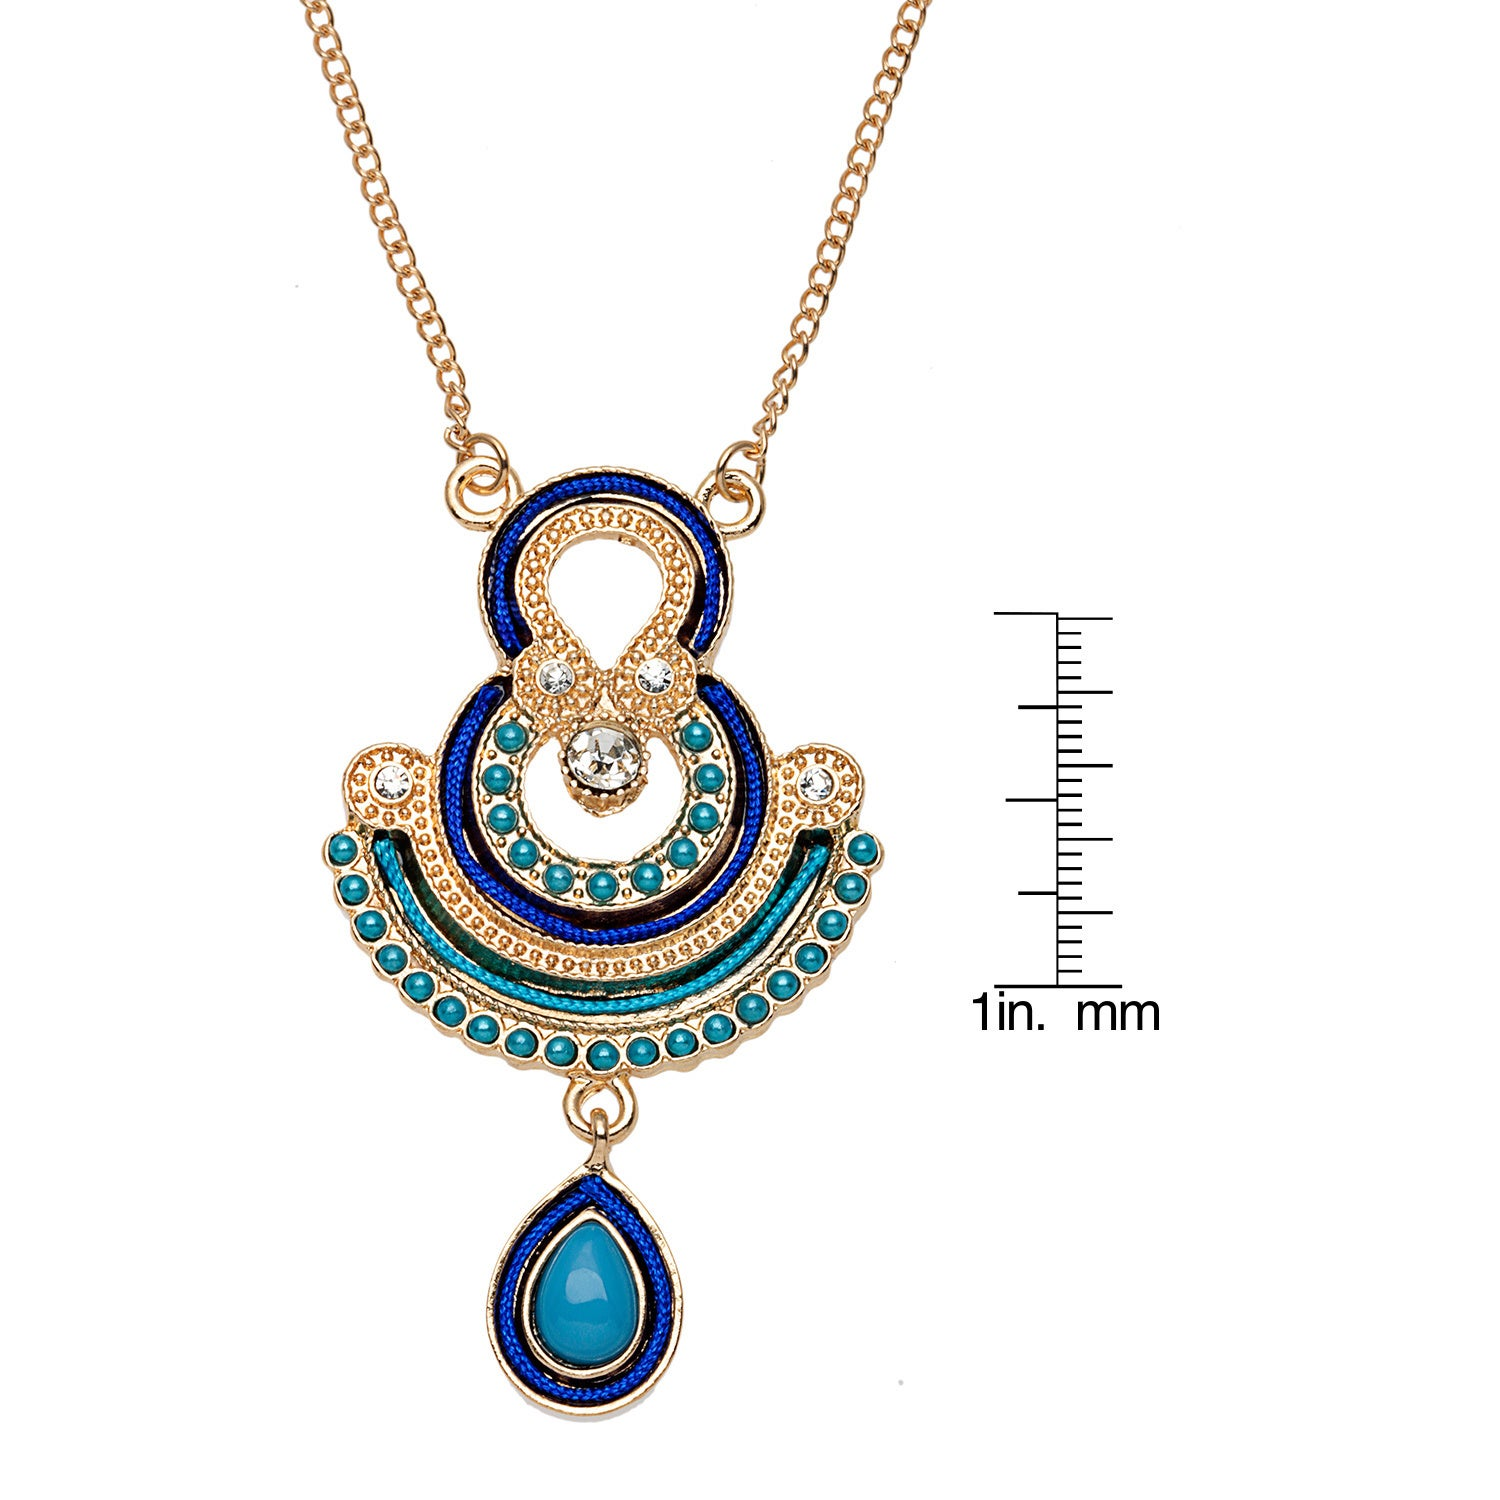 Alexa starr art deco pendant necklace and earrings jewelry set alexa starr art deco pendant necklace and earrings jewelry set free shipping on orders over 45 overstock 16714283 mozeypictures Image collections